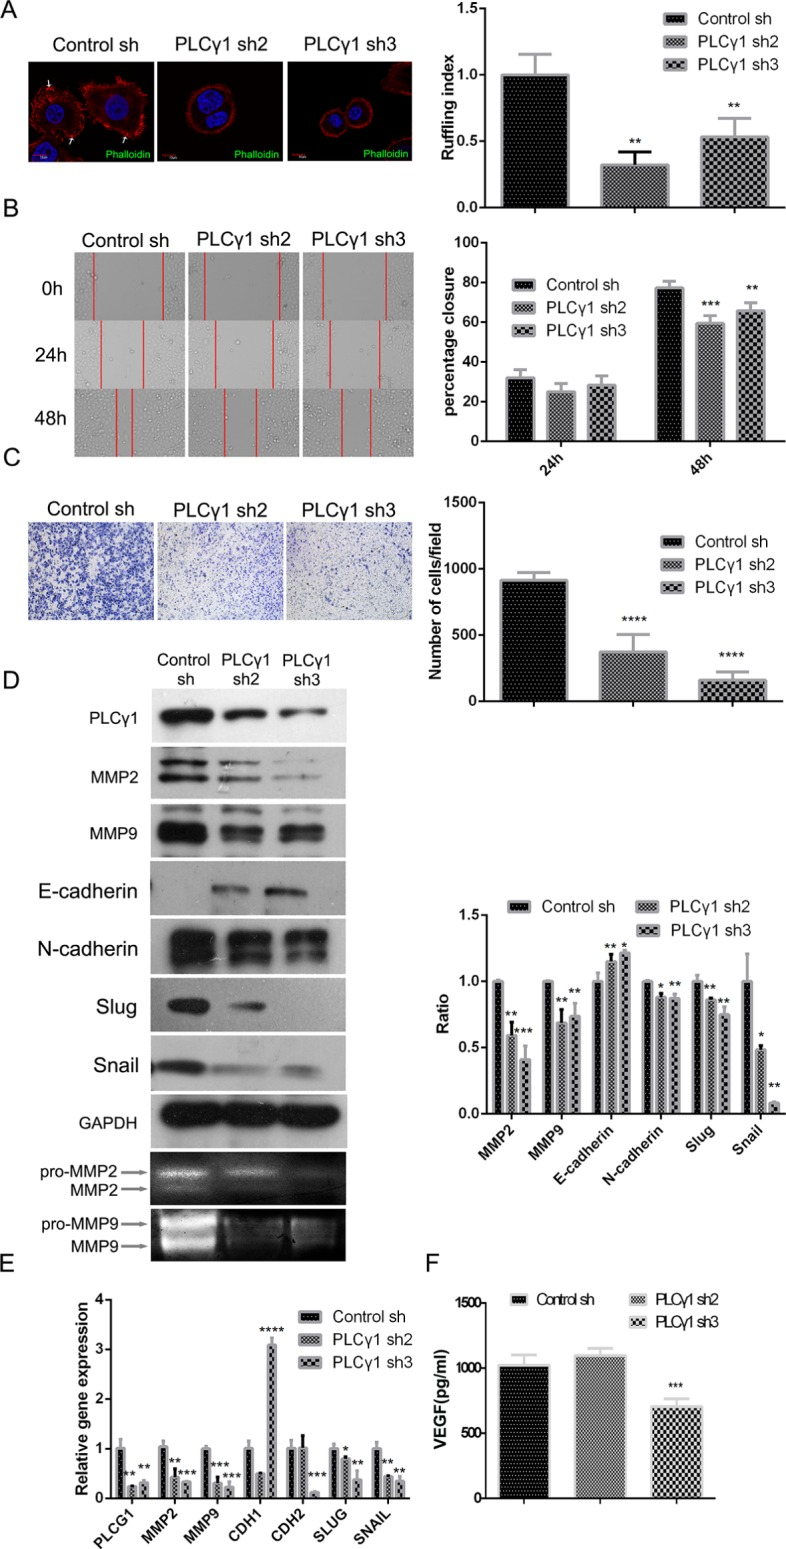 Lentivirus-mediated PLCγ1 shRNA could suppress migration in human gastric adenocarcinoma BGC-823 cells Cells were transduced with lentivirus-mediated PLCγ1 shRNA2/3 vectors. ( A ) The formation of membrane ruffles was detected using Ruffling assay as described in Materials and Methods. The cell nuclei were stained DAPI (blue) and the membrane ruffles were stained rhodamine-conjugated phalloidin (red). Scale bar = 10 μm. ( B and C ) The migration ability was measured using Transwell assay (B, magnification × 100) and Scratch assay (C, magnification × 400) as described in Materials and Methods. ( D ) The protein levels of MMP2, <t>MMP9,</t> E-cadherin, N-cadherin, snail, slug, and <t>GAPDH</t> were detected with Western blotting analysis, and the pro and active forms of MMP2/9 were observed using gelatin zymography assay as described in Materials and Methods. ( E ) The mRNA levels of PLCG1, MMP2, MMP9, CDHI, CDH2, SNAIL, SLUG, and GAPDH were detected using Real-time PCR analysis as described in Materials and Methods. ( F ) The level of VEGF in extracellular matrix was detected using ELISA as described in Materials and Methods. Data are reported as means ± S.D. of three independent experiments (* P